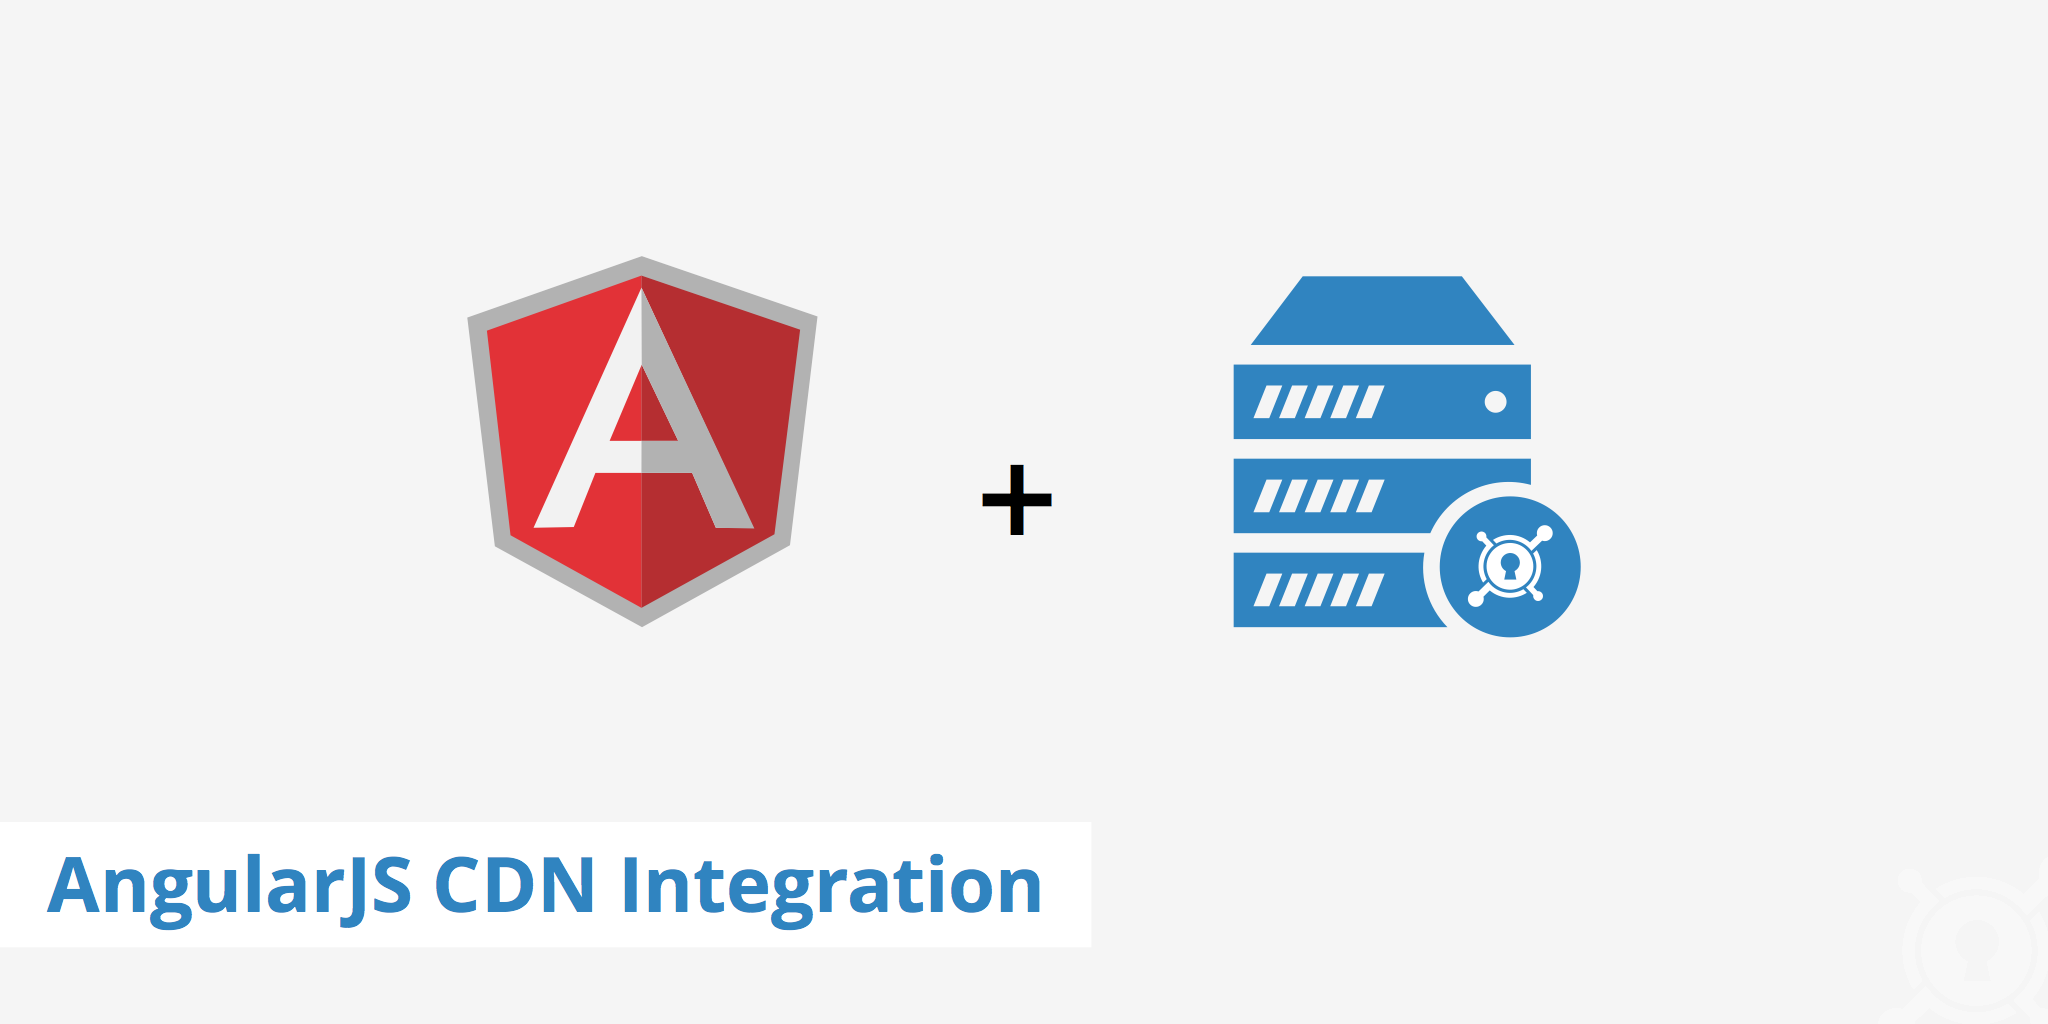 AngularJS CDN Integration